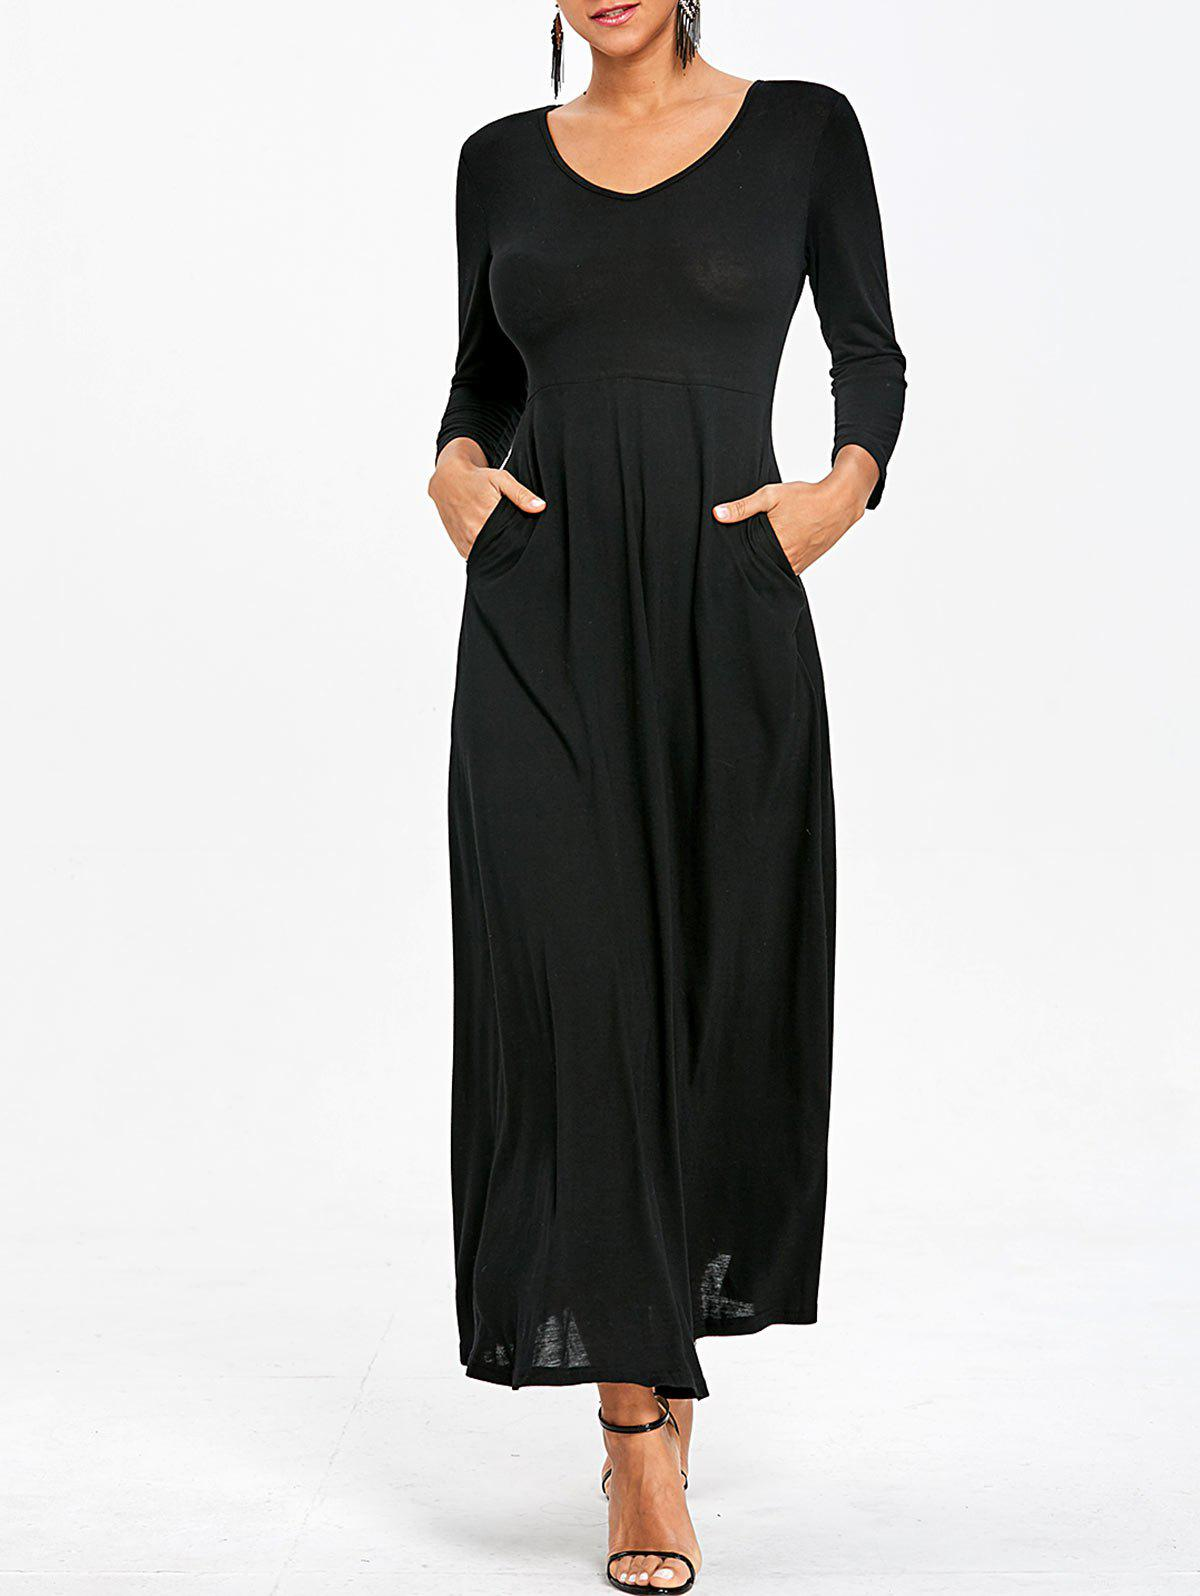 V Neck Empire Waist Maxi Dress - BLACK S